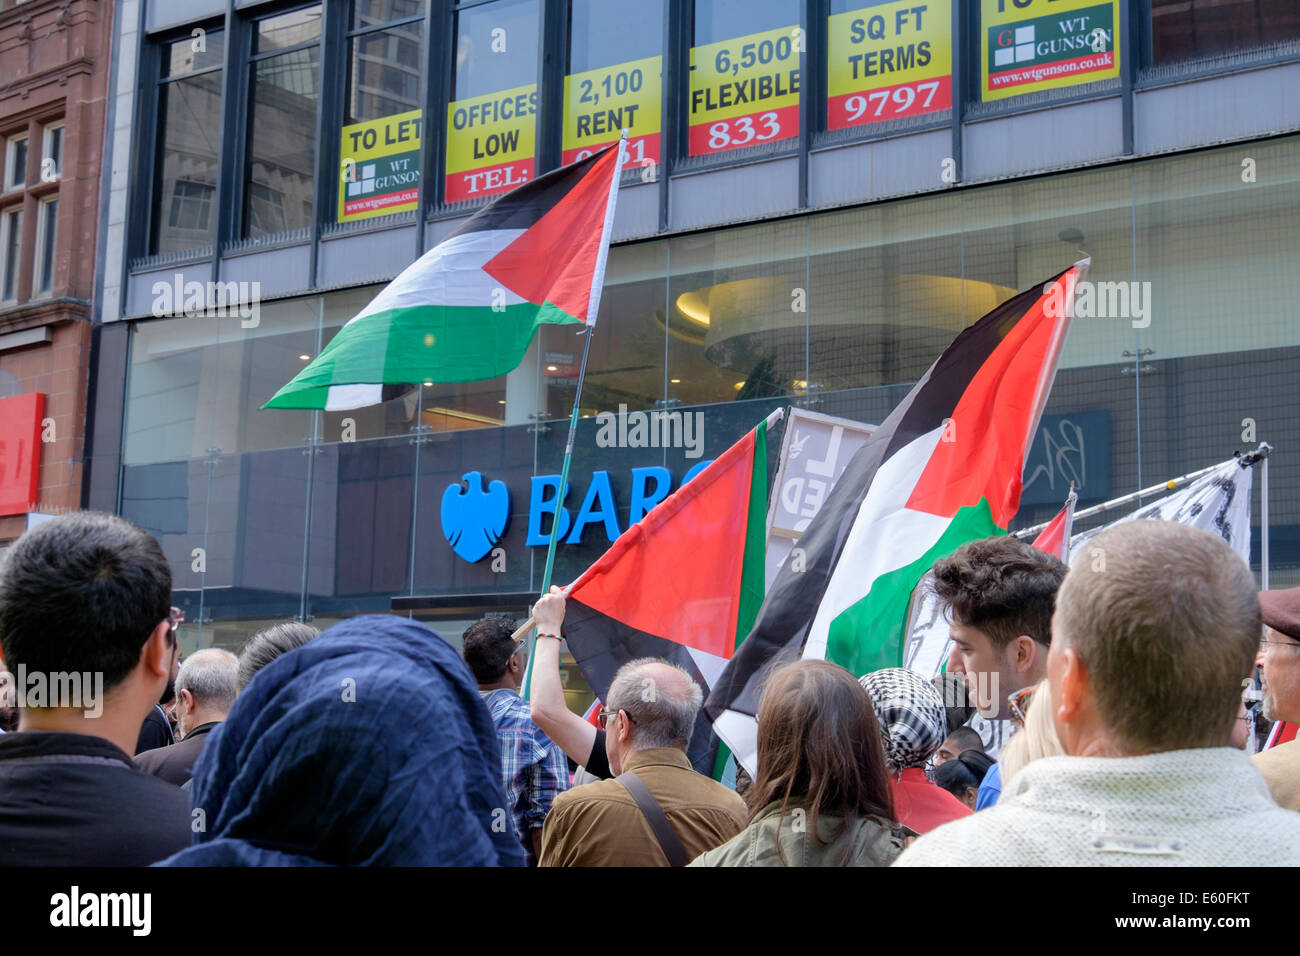 Manchester, UK. 9th August 2014. Hundreds of Pro-Palestinian demonstrators protest outside Barclays Bank in Market - Stock Image